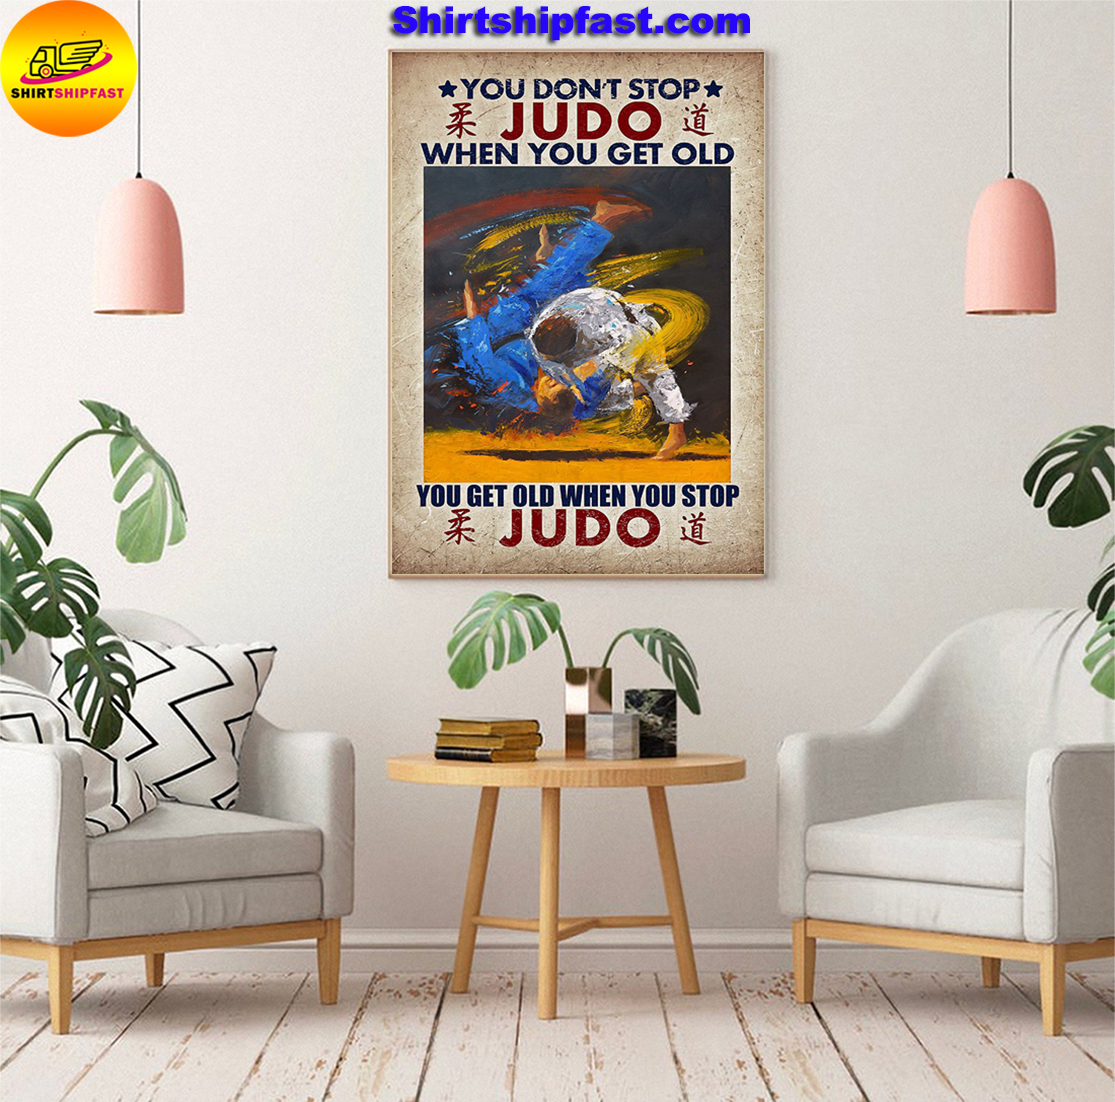 You don't stop JUDO when you get old canvas prints - Picture 3